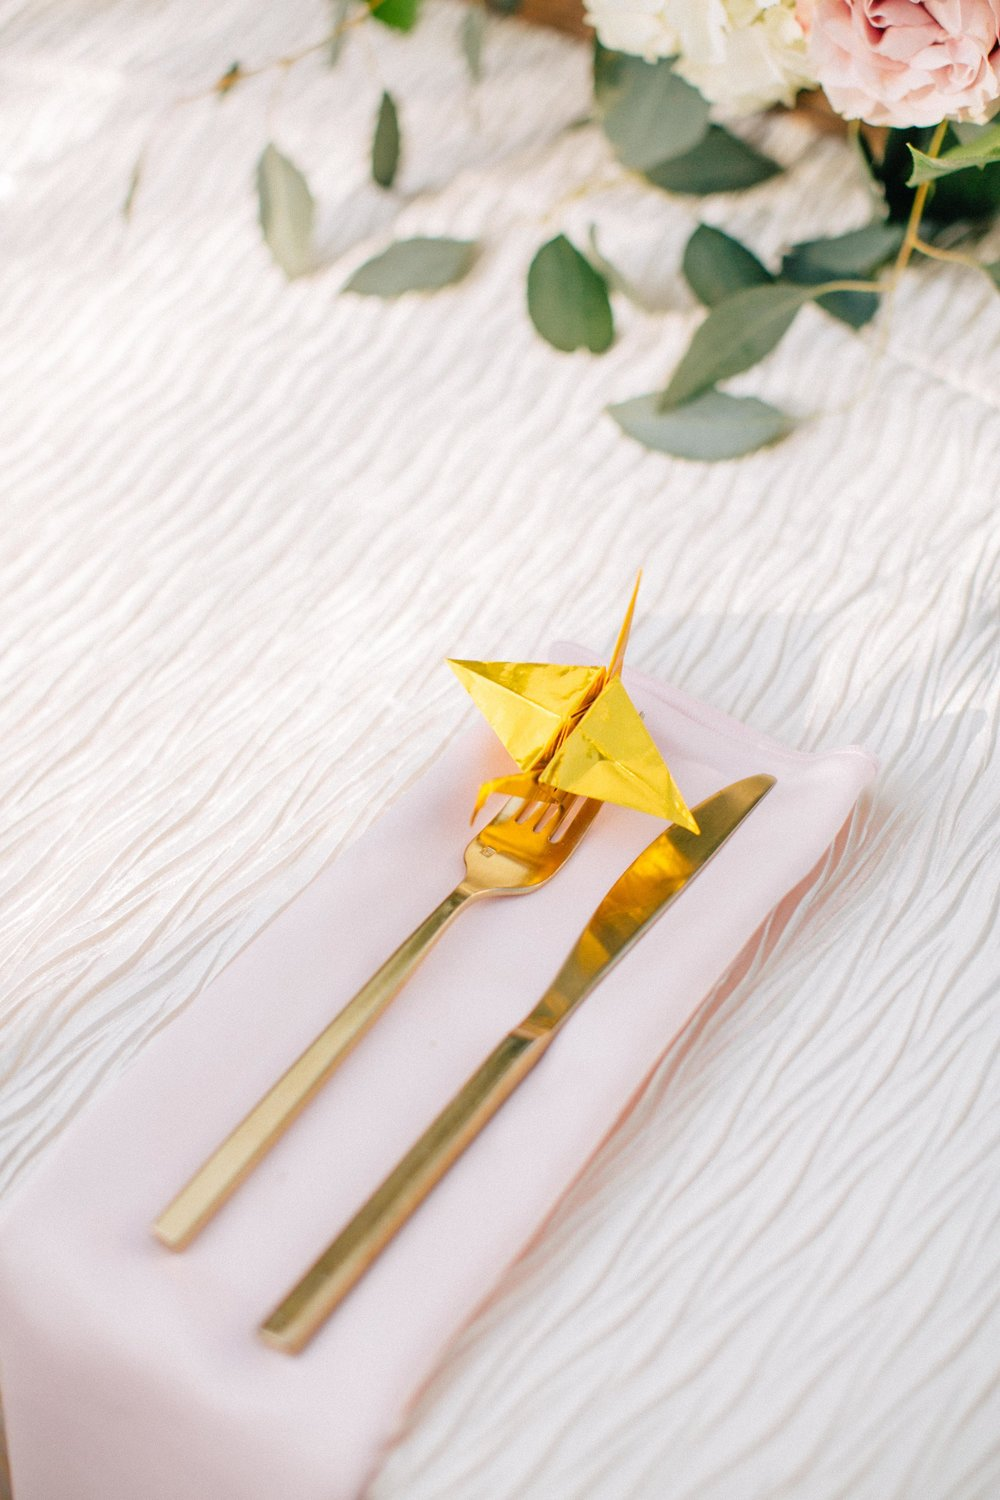 golden origami crane at place setting